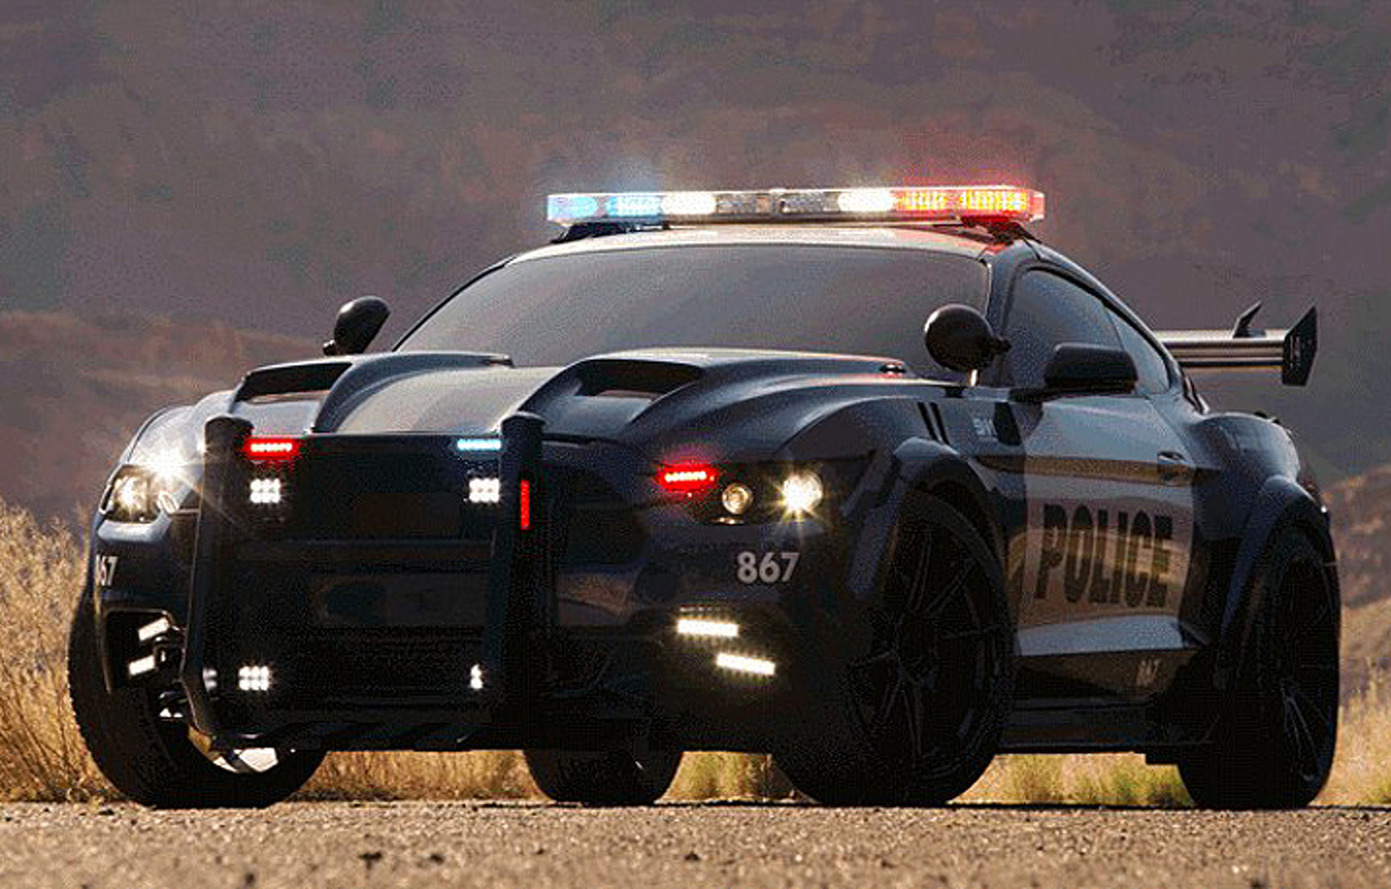 Barricade Returns to 'Transformers 5' as a New Ford Mustang